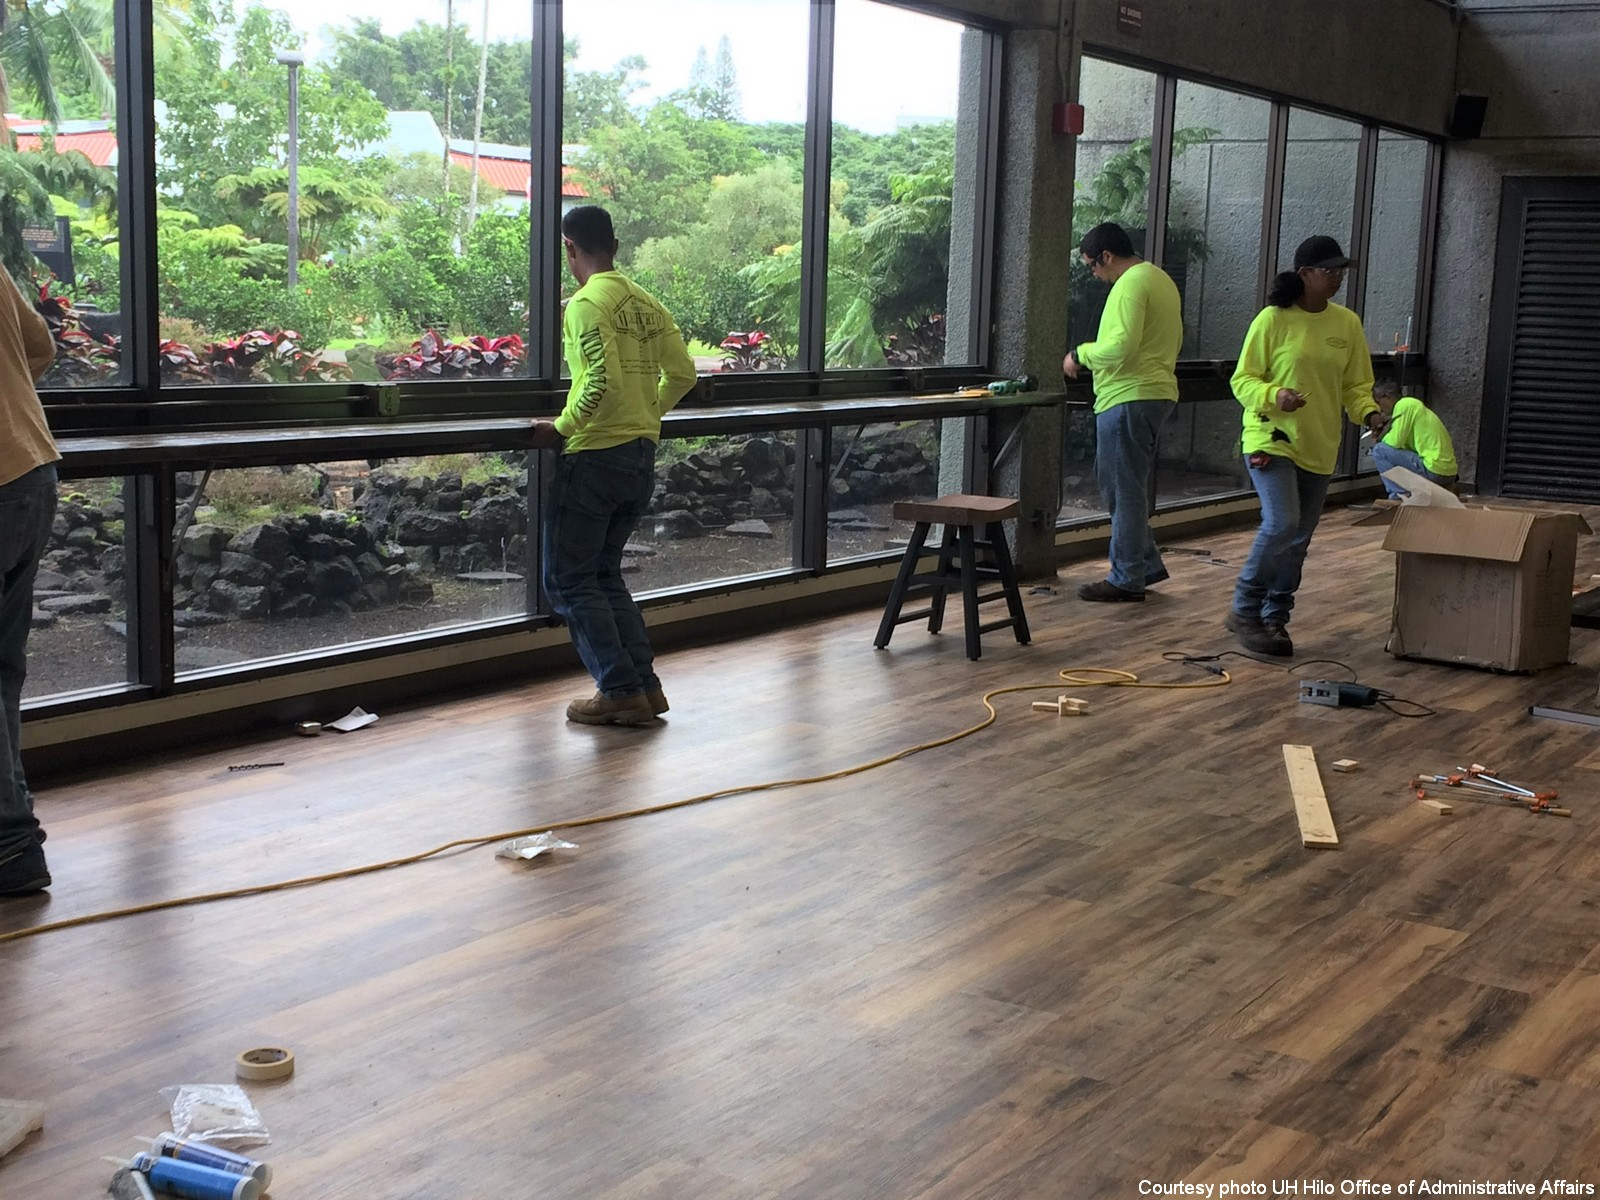 Workers install new counter in front of the windows looking out at gardens.